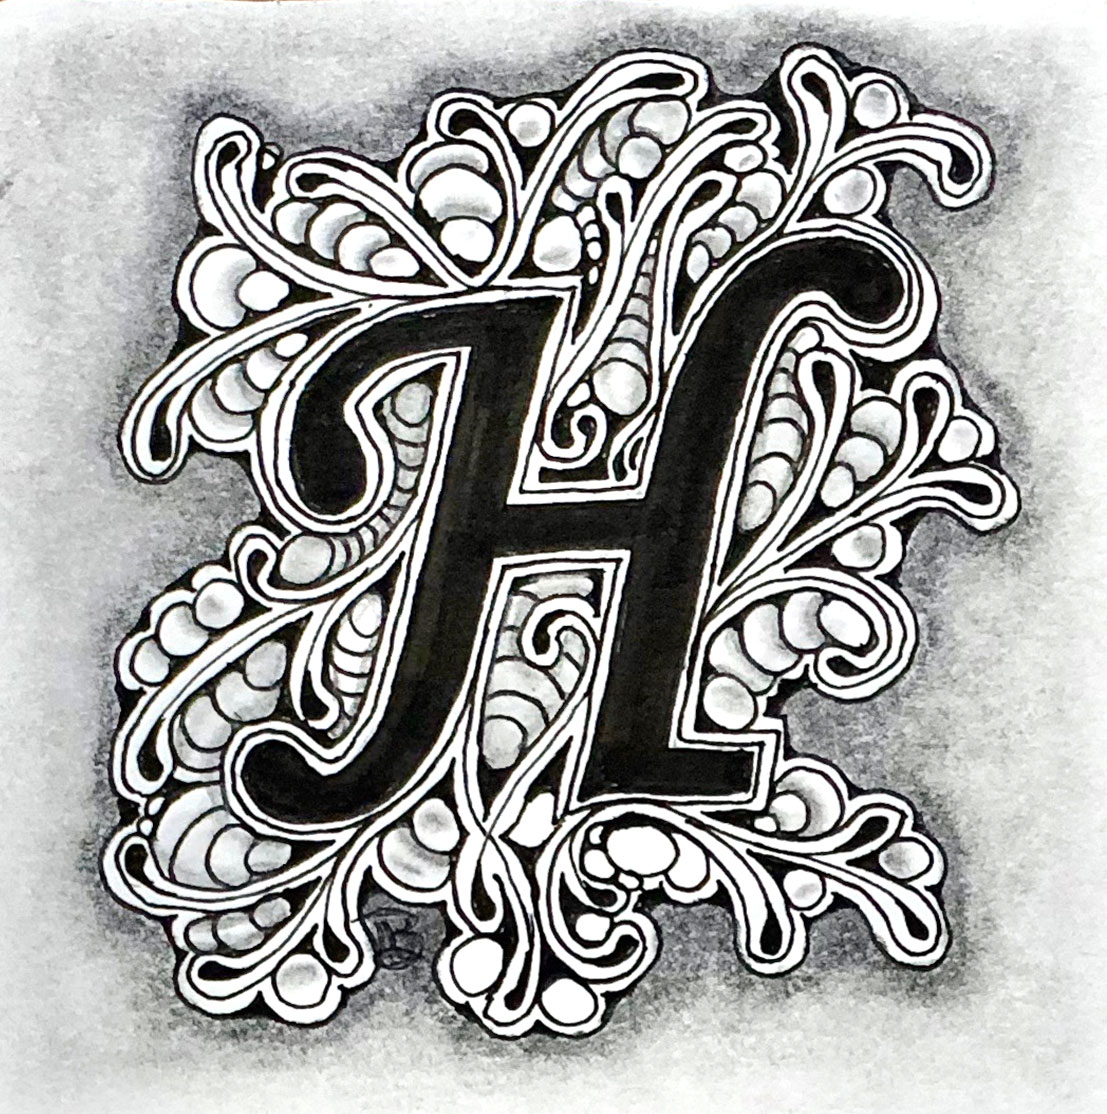 Embedded H With Smoky Shading